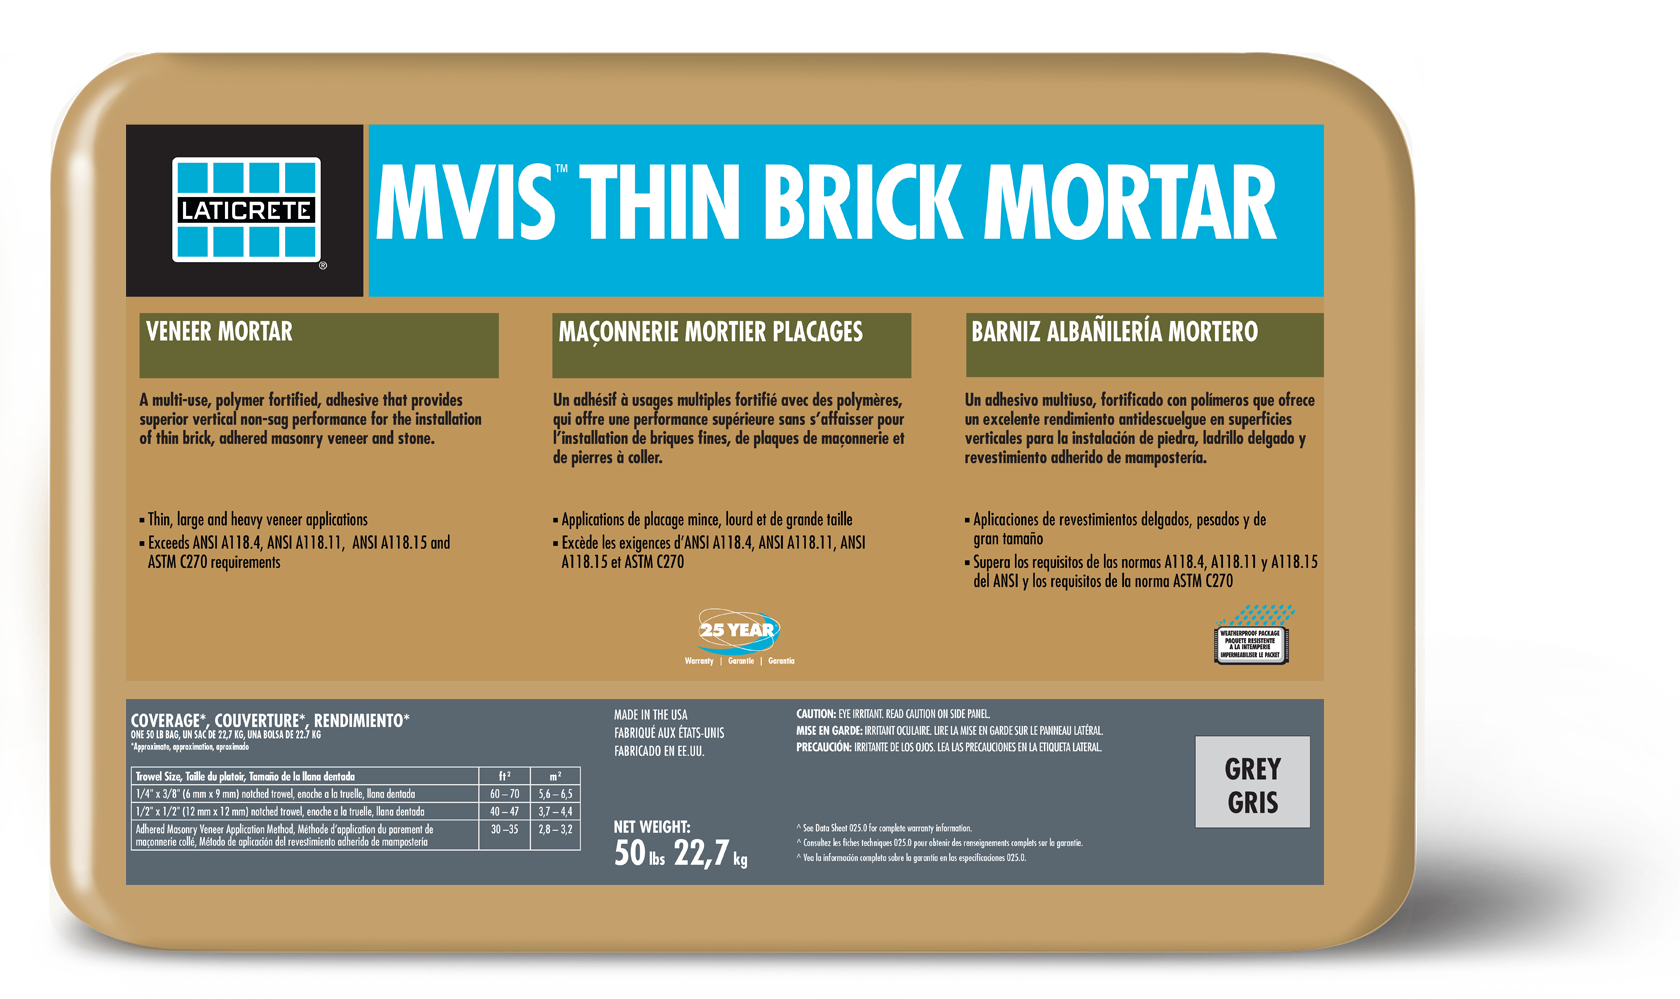 MVIS™ Thin Brick Mortar